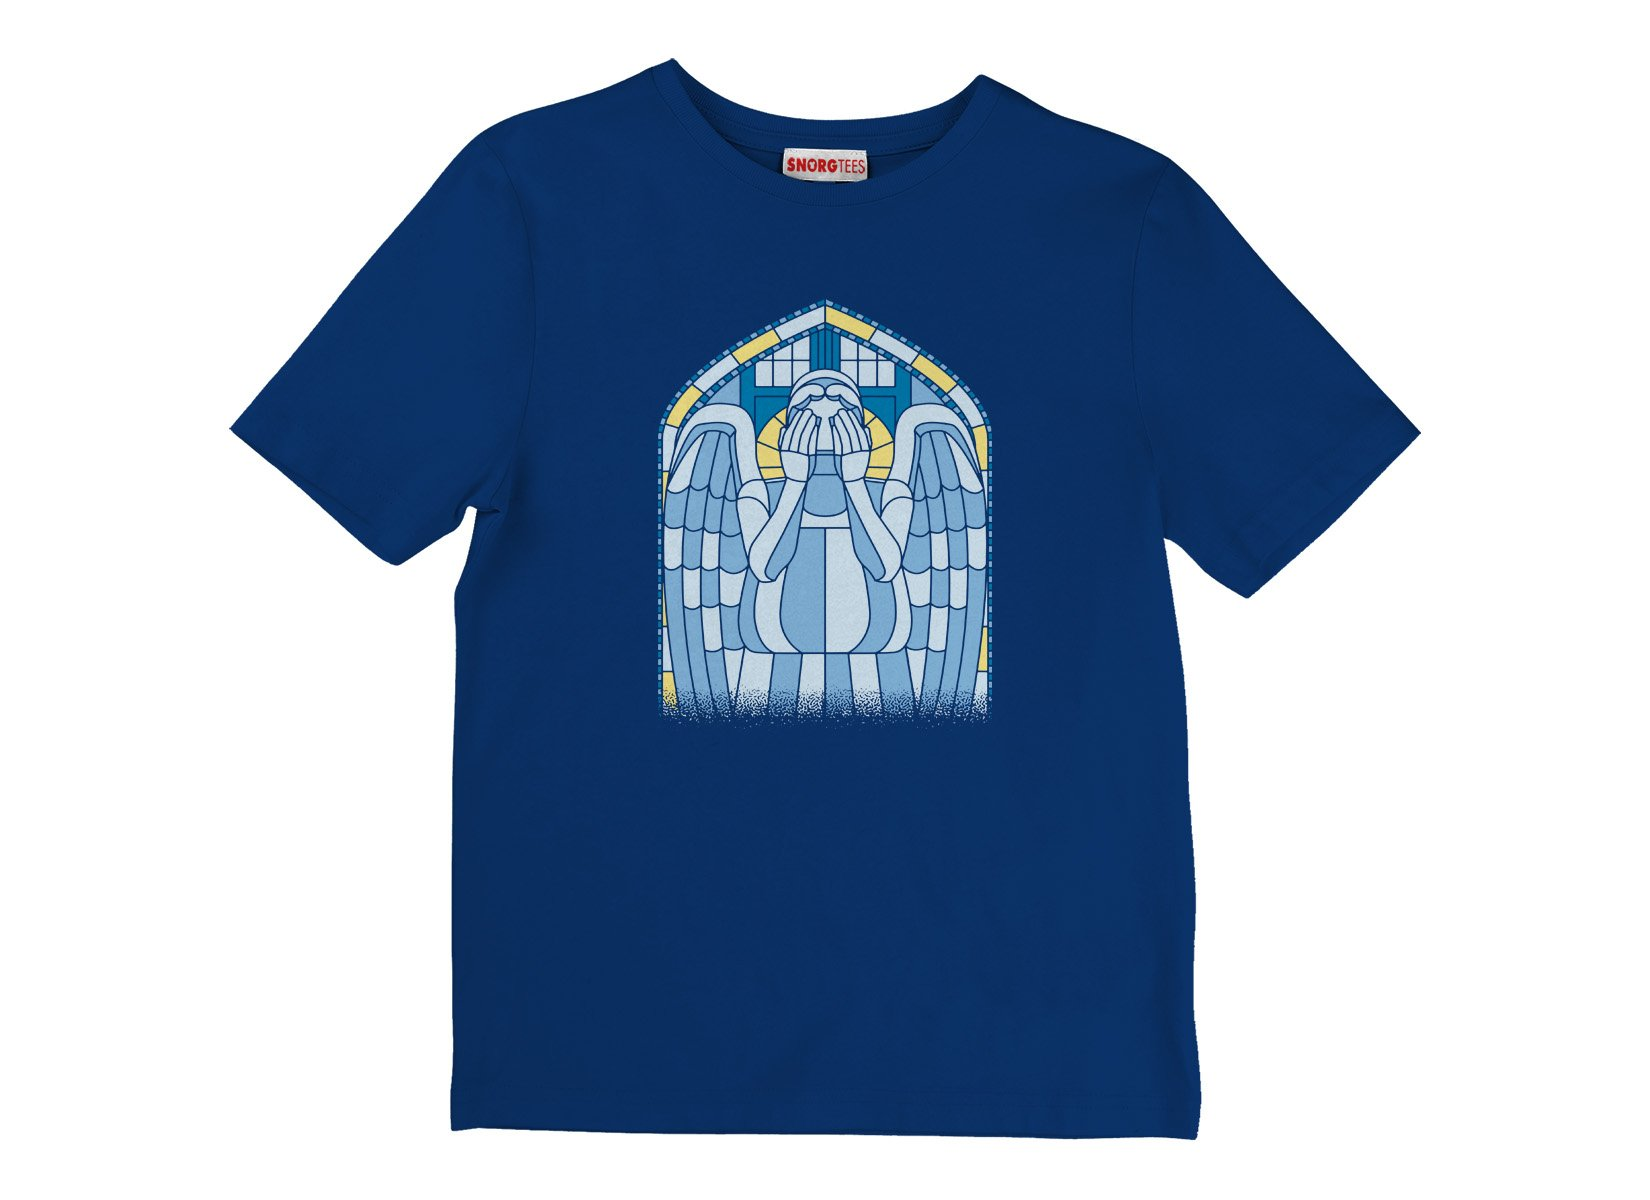 Weeping Angel on Kids T-Shirt